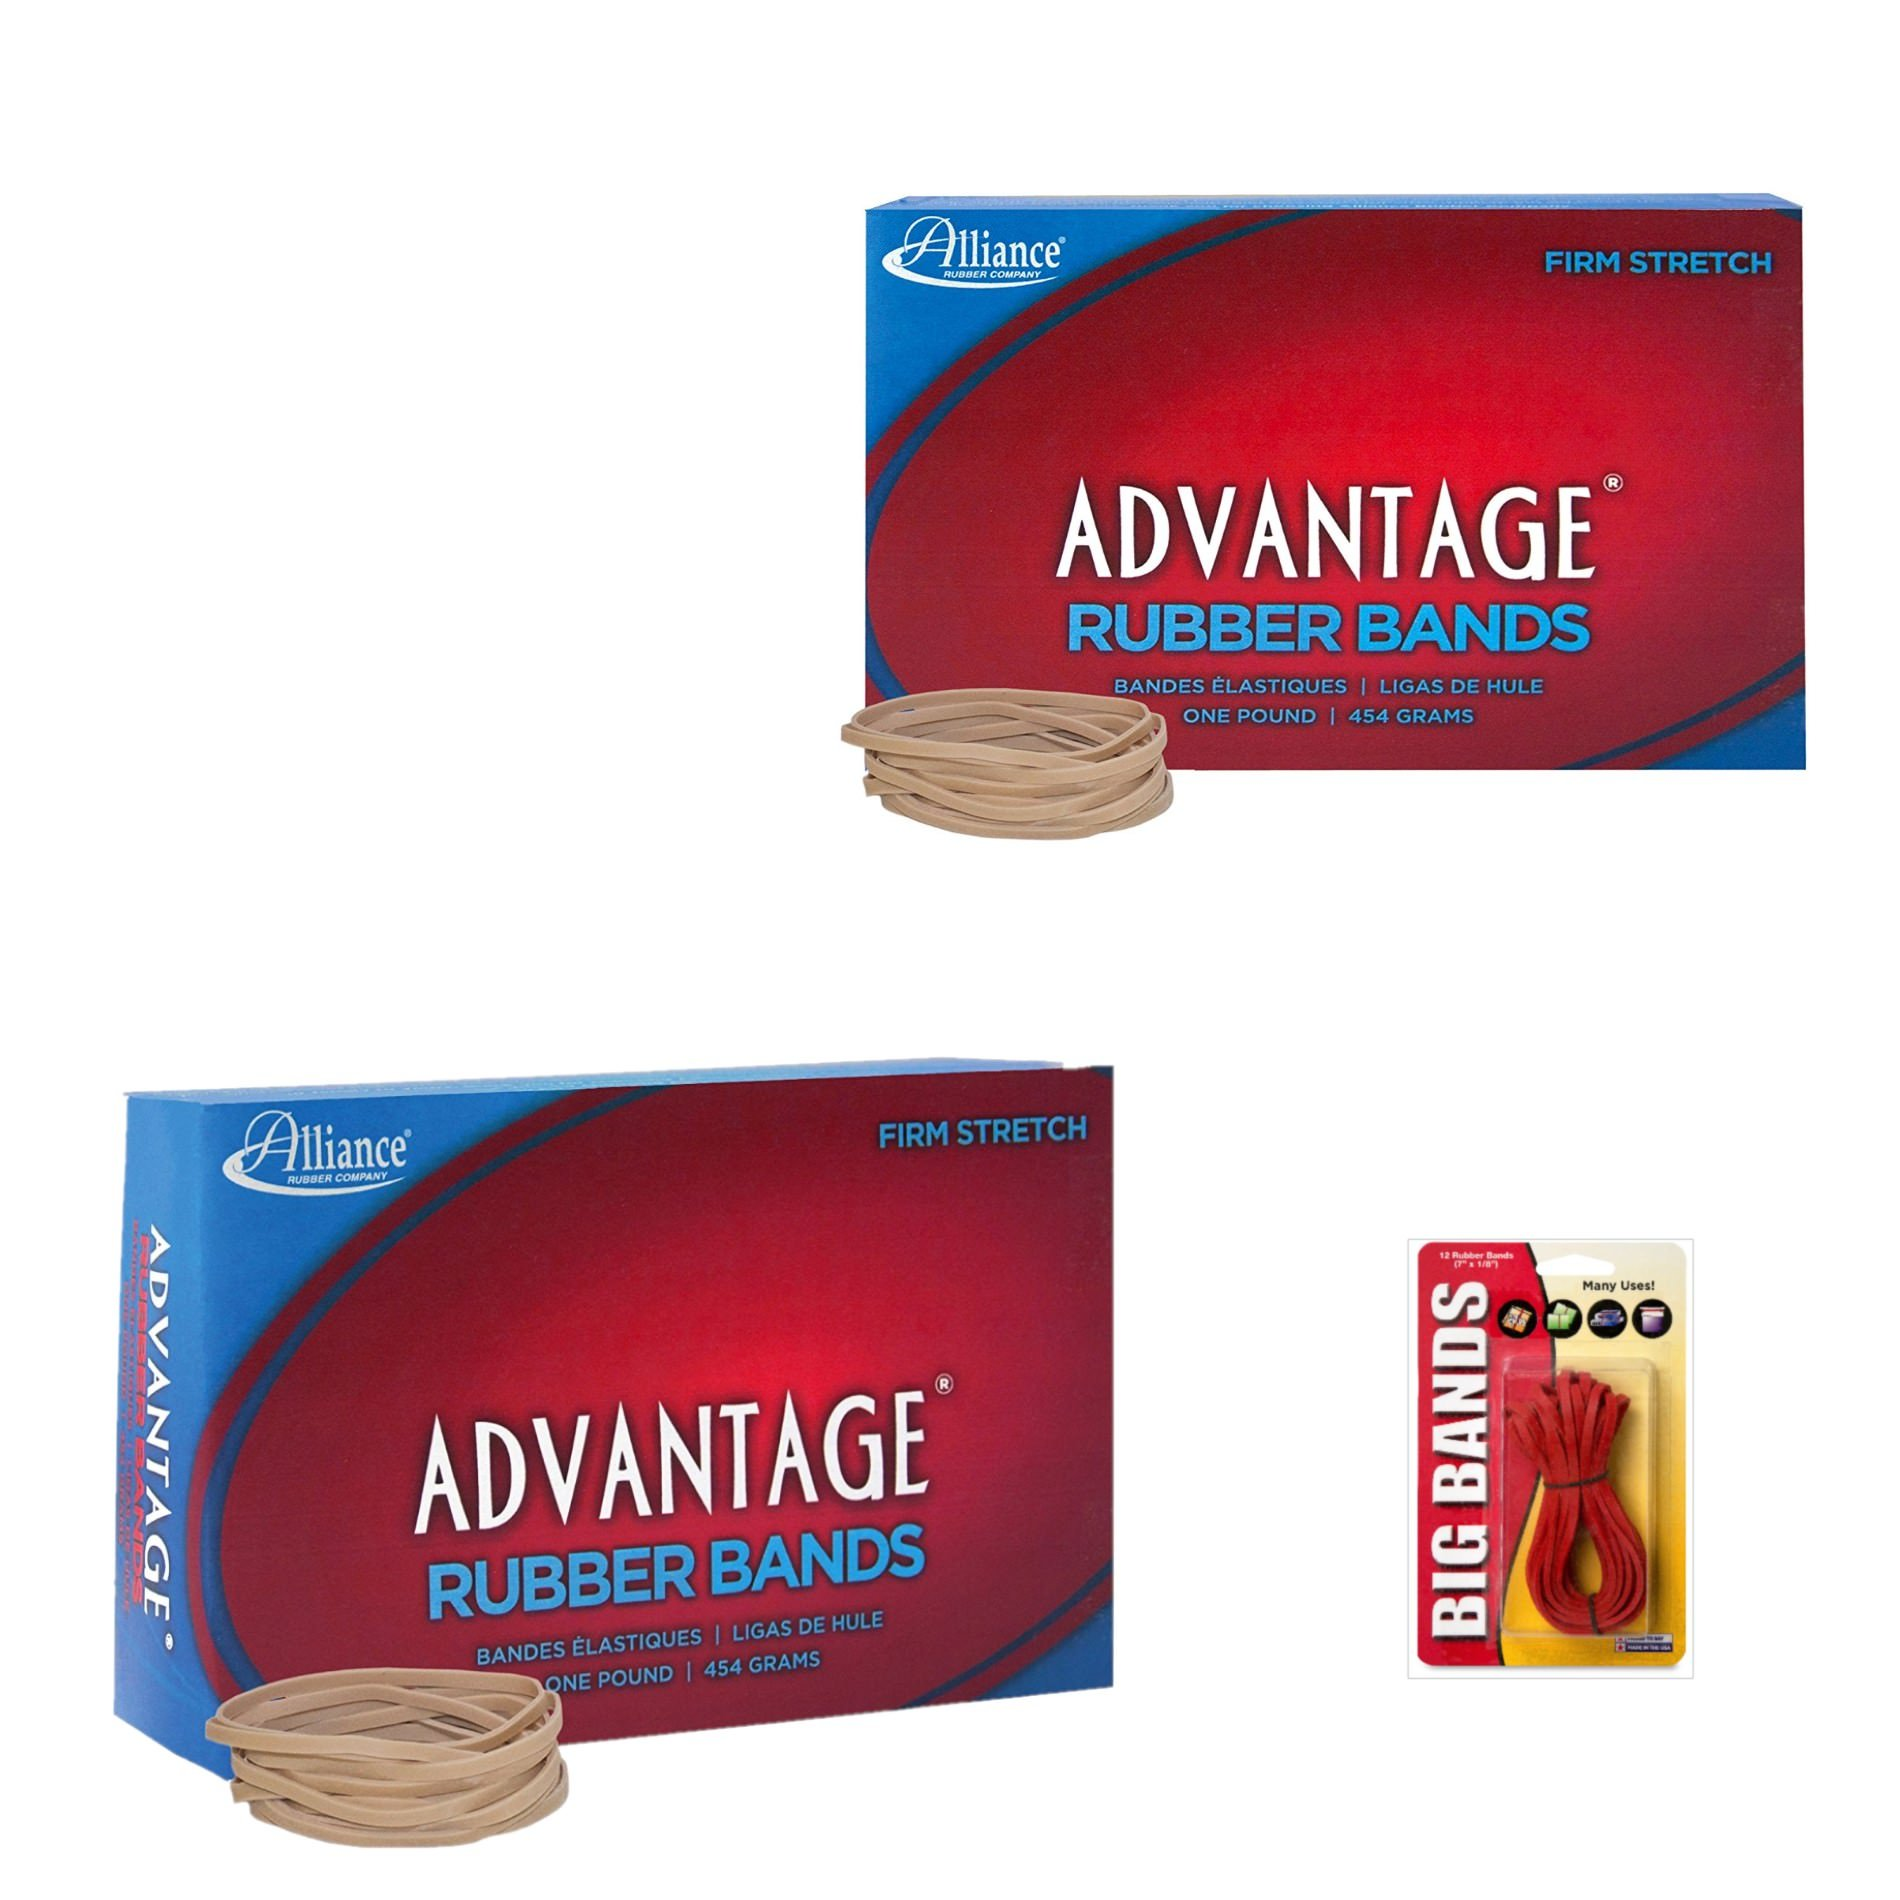 Alliance Advantage Rubber Band Size #32 (3 X 1/8 inches), 2 Pound Box (Approximately 1400 Bands per Pack) (26325) Bundle with 12 Big Rubber Bands